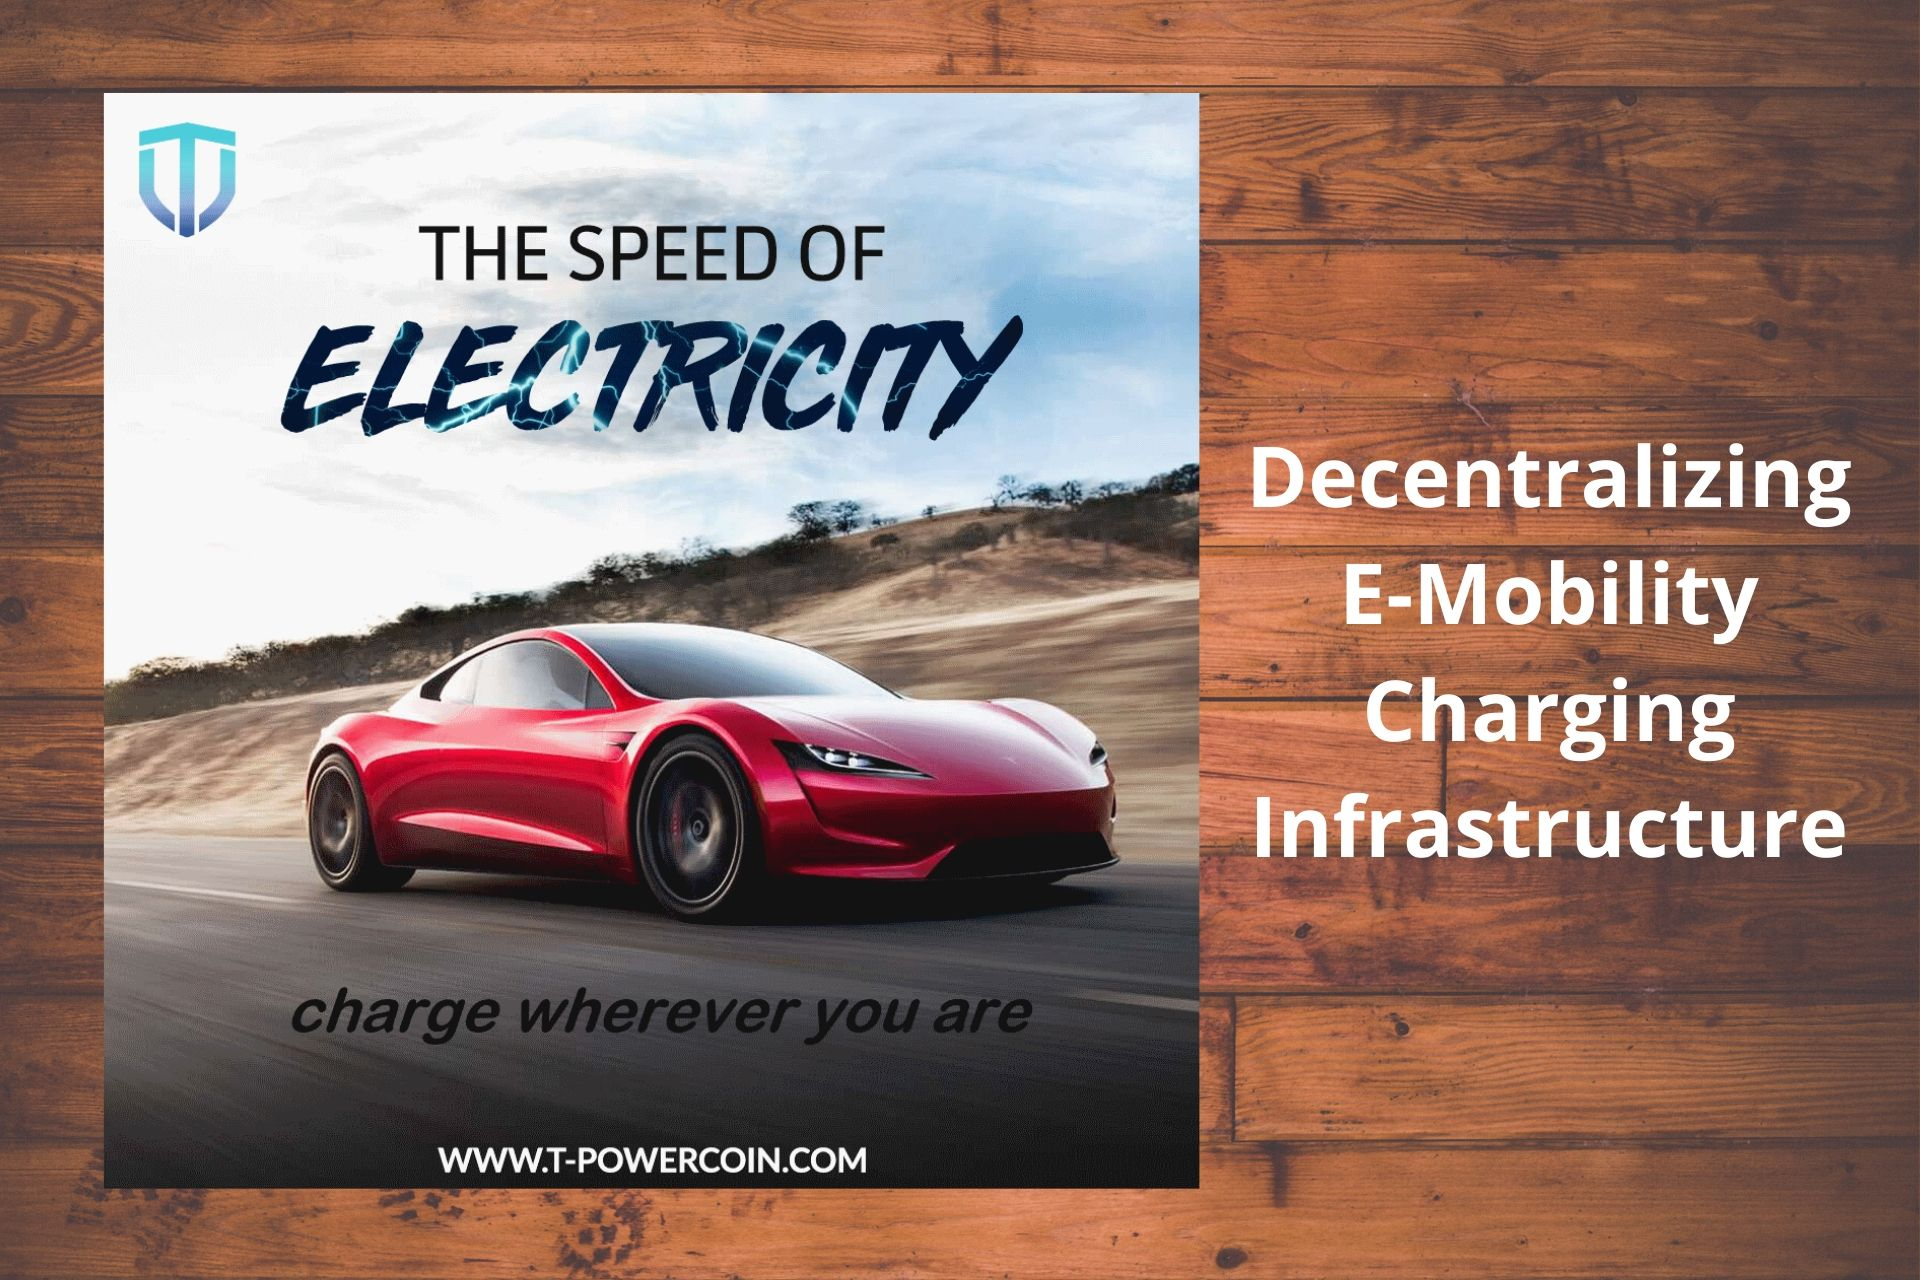 The Power Solution: Decentralizing E-Mobility Charging Infrastructure Using the Power of Blockchain